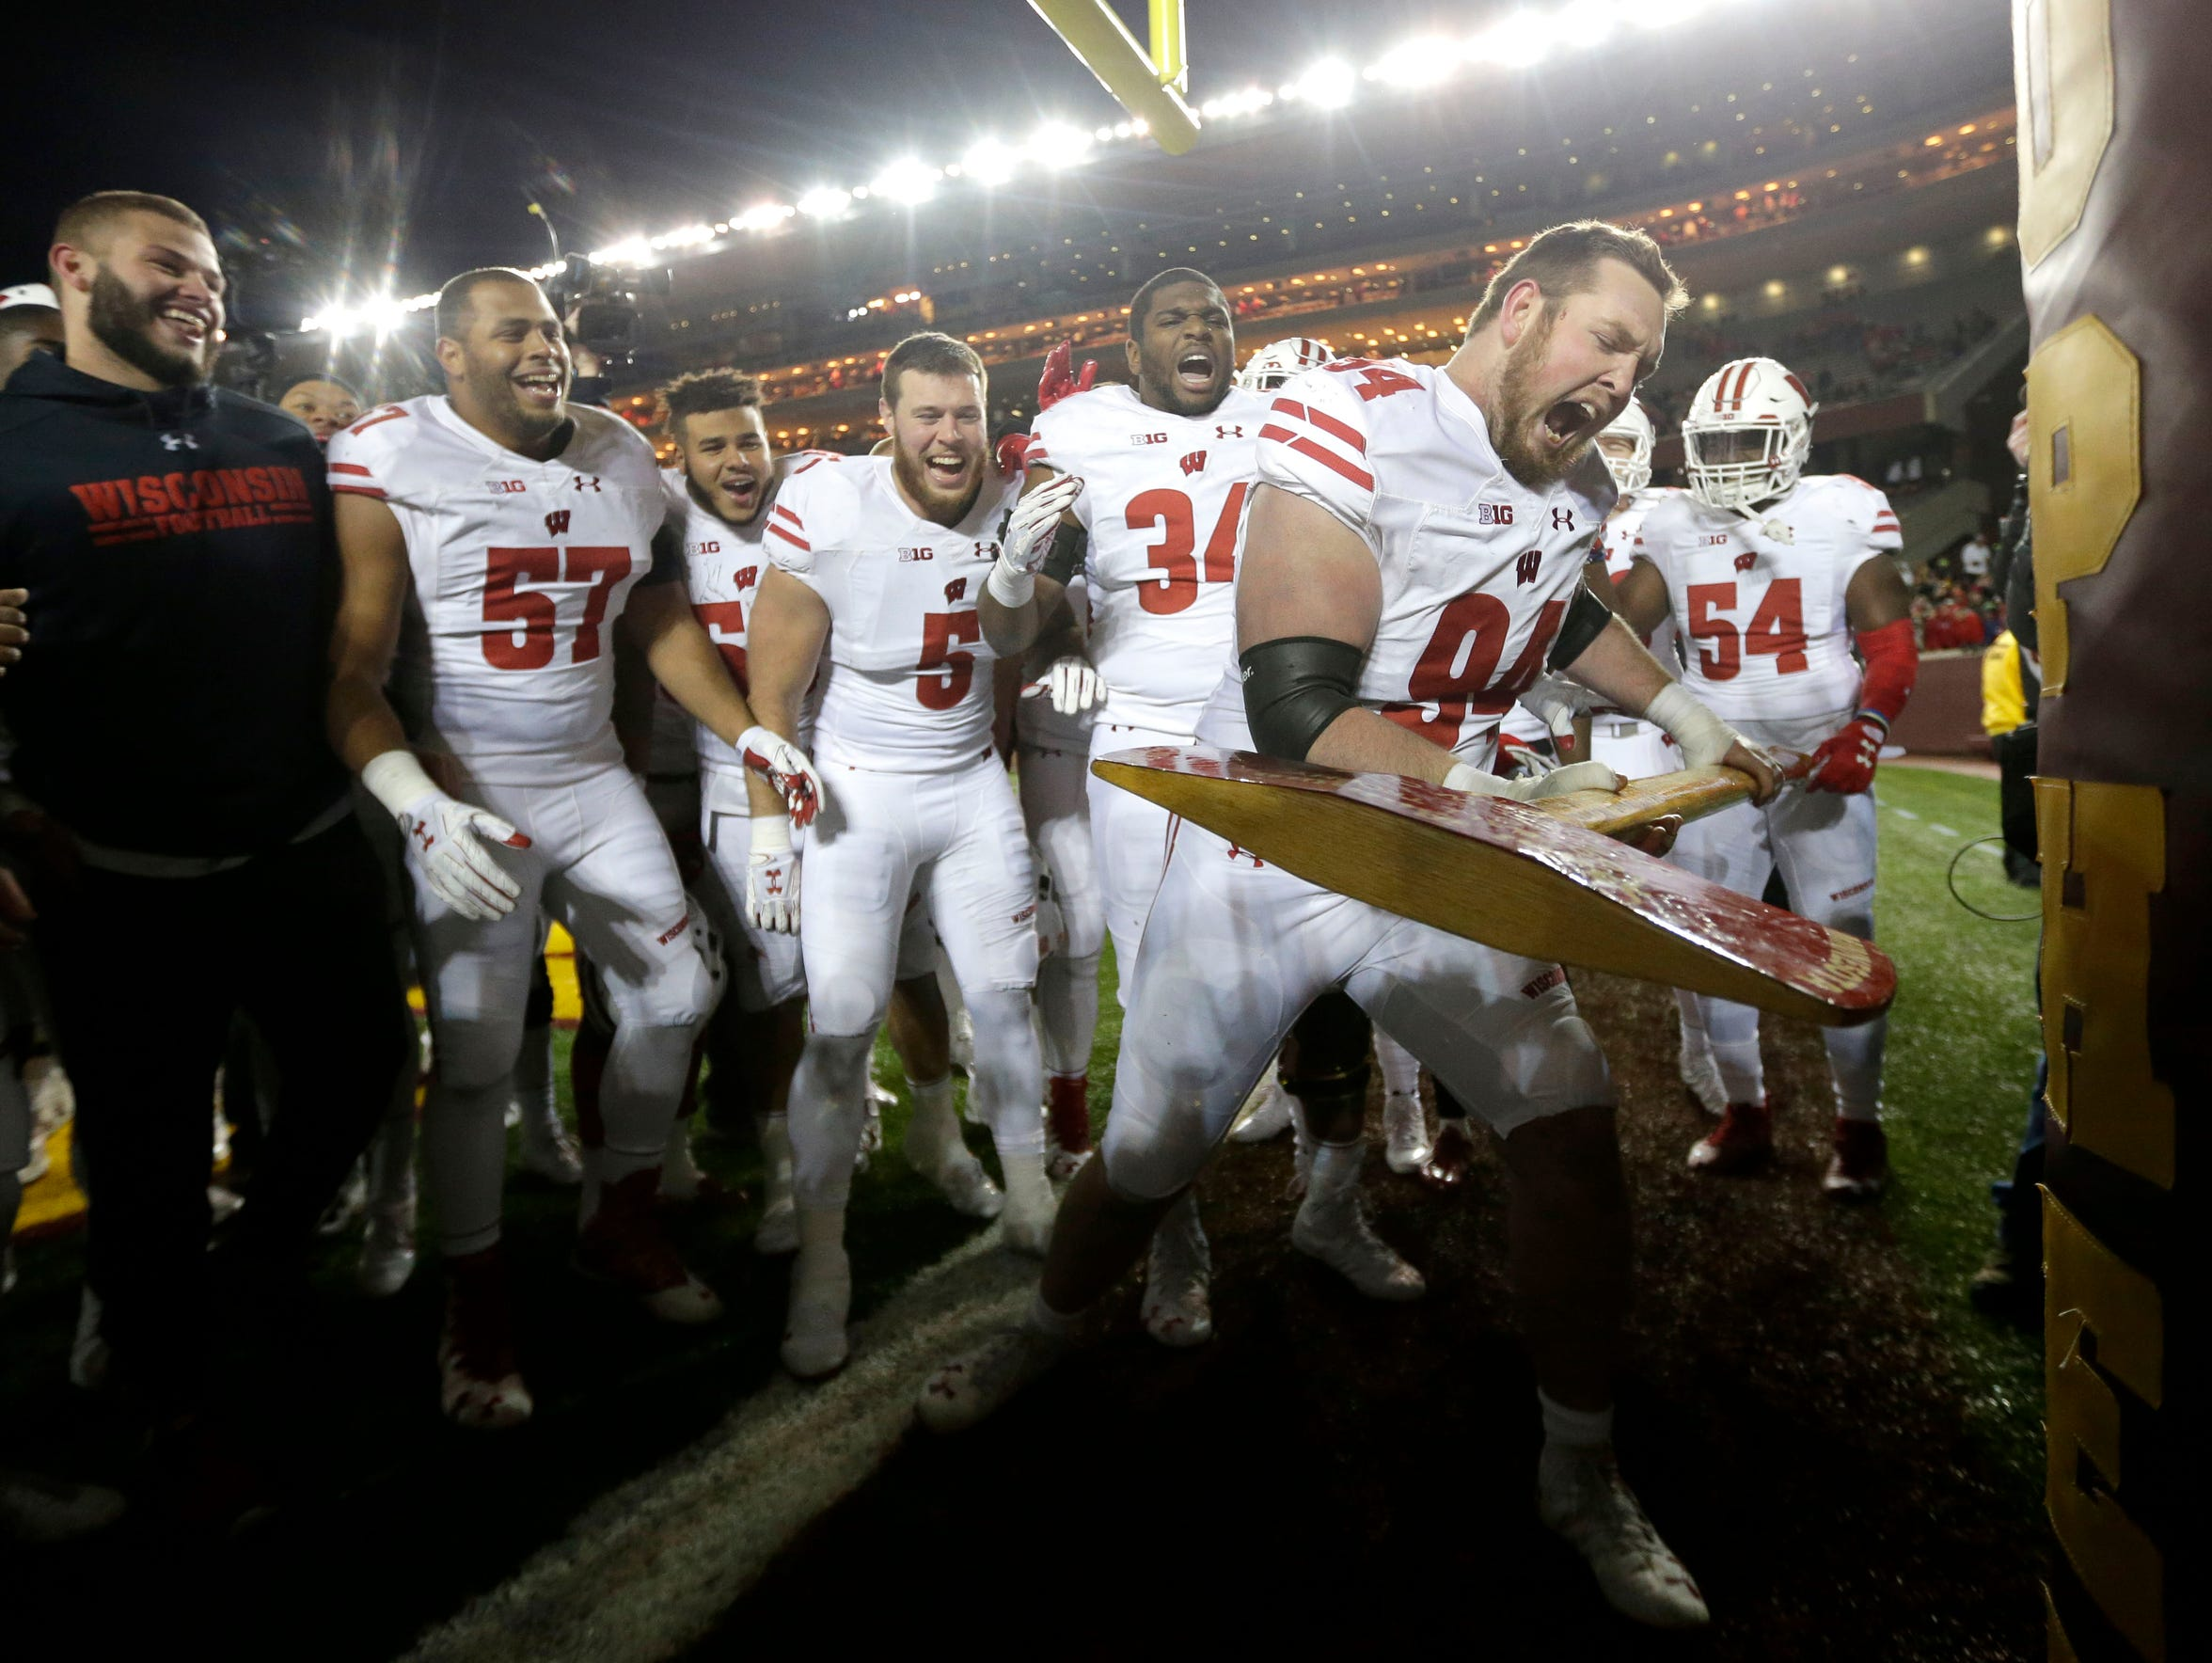 Wisconsin Badgers defensive end Conor Sheehy imitates chopping down the goal post after UW's 31-0 victory over Minnesota on Saturday, Nov. 25. It was the Badgers' 14th straight win over Minnesota.